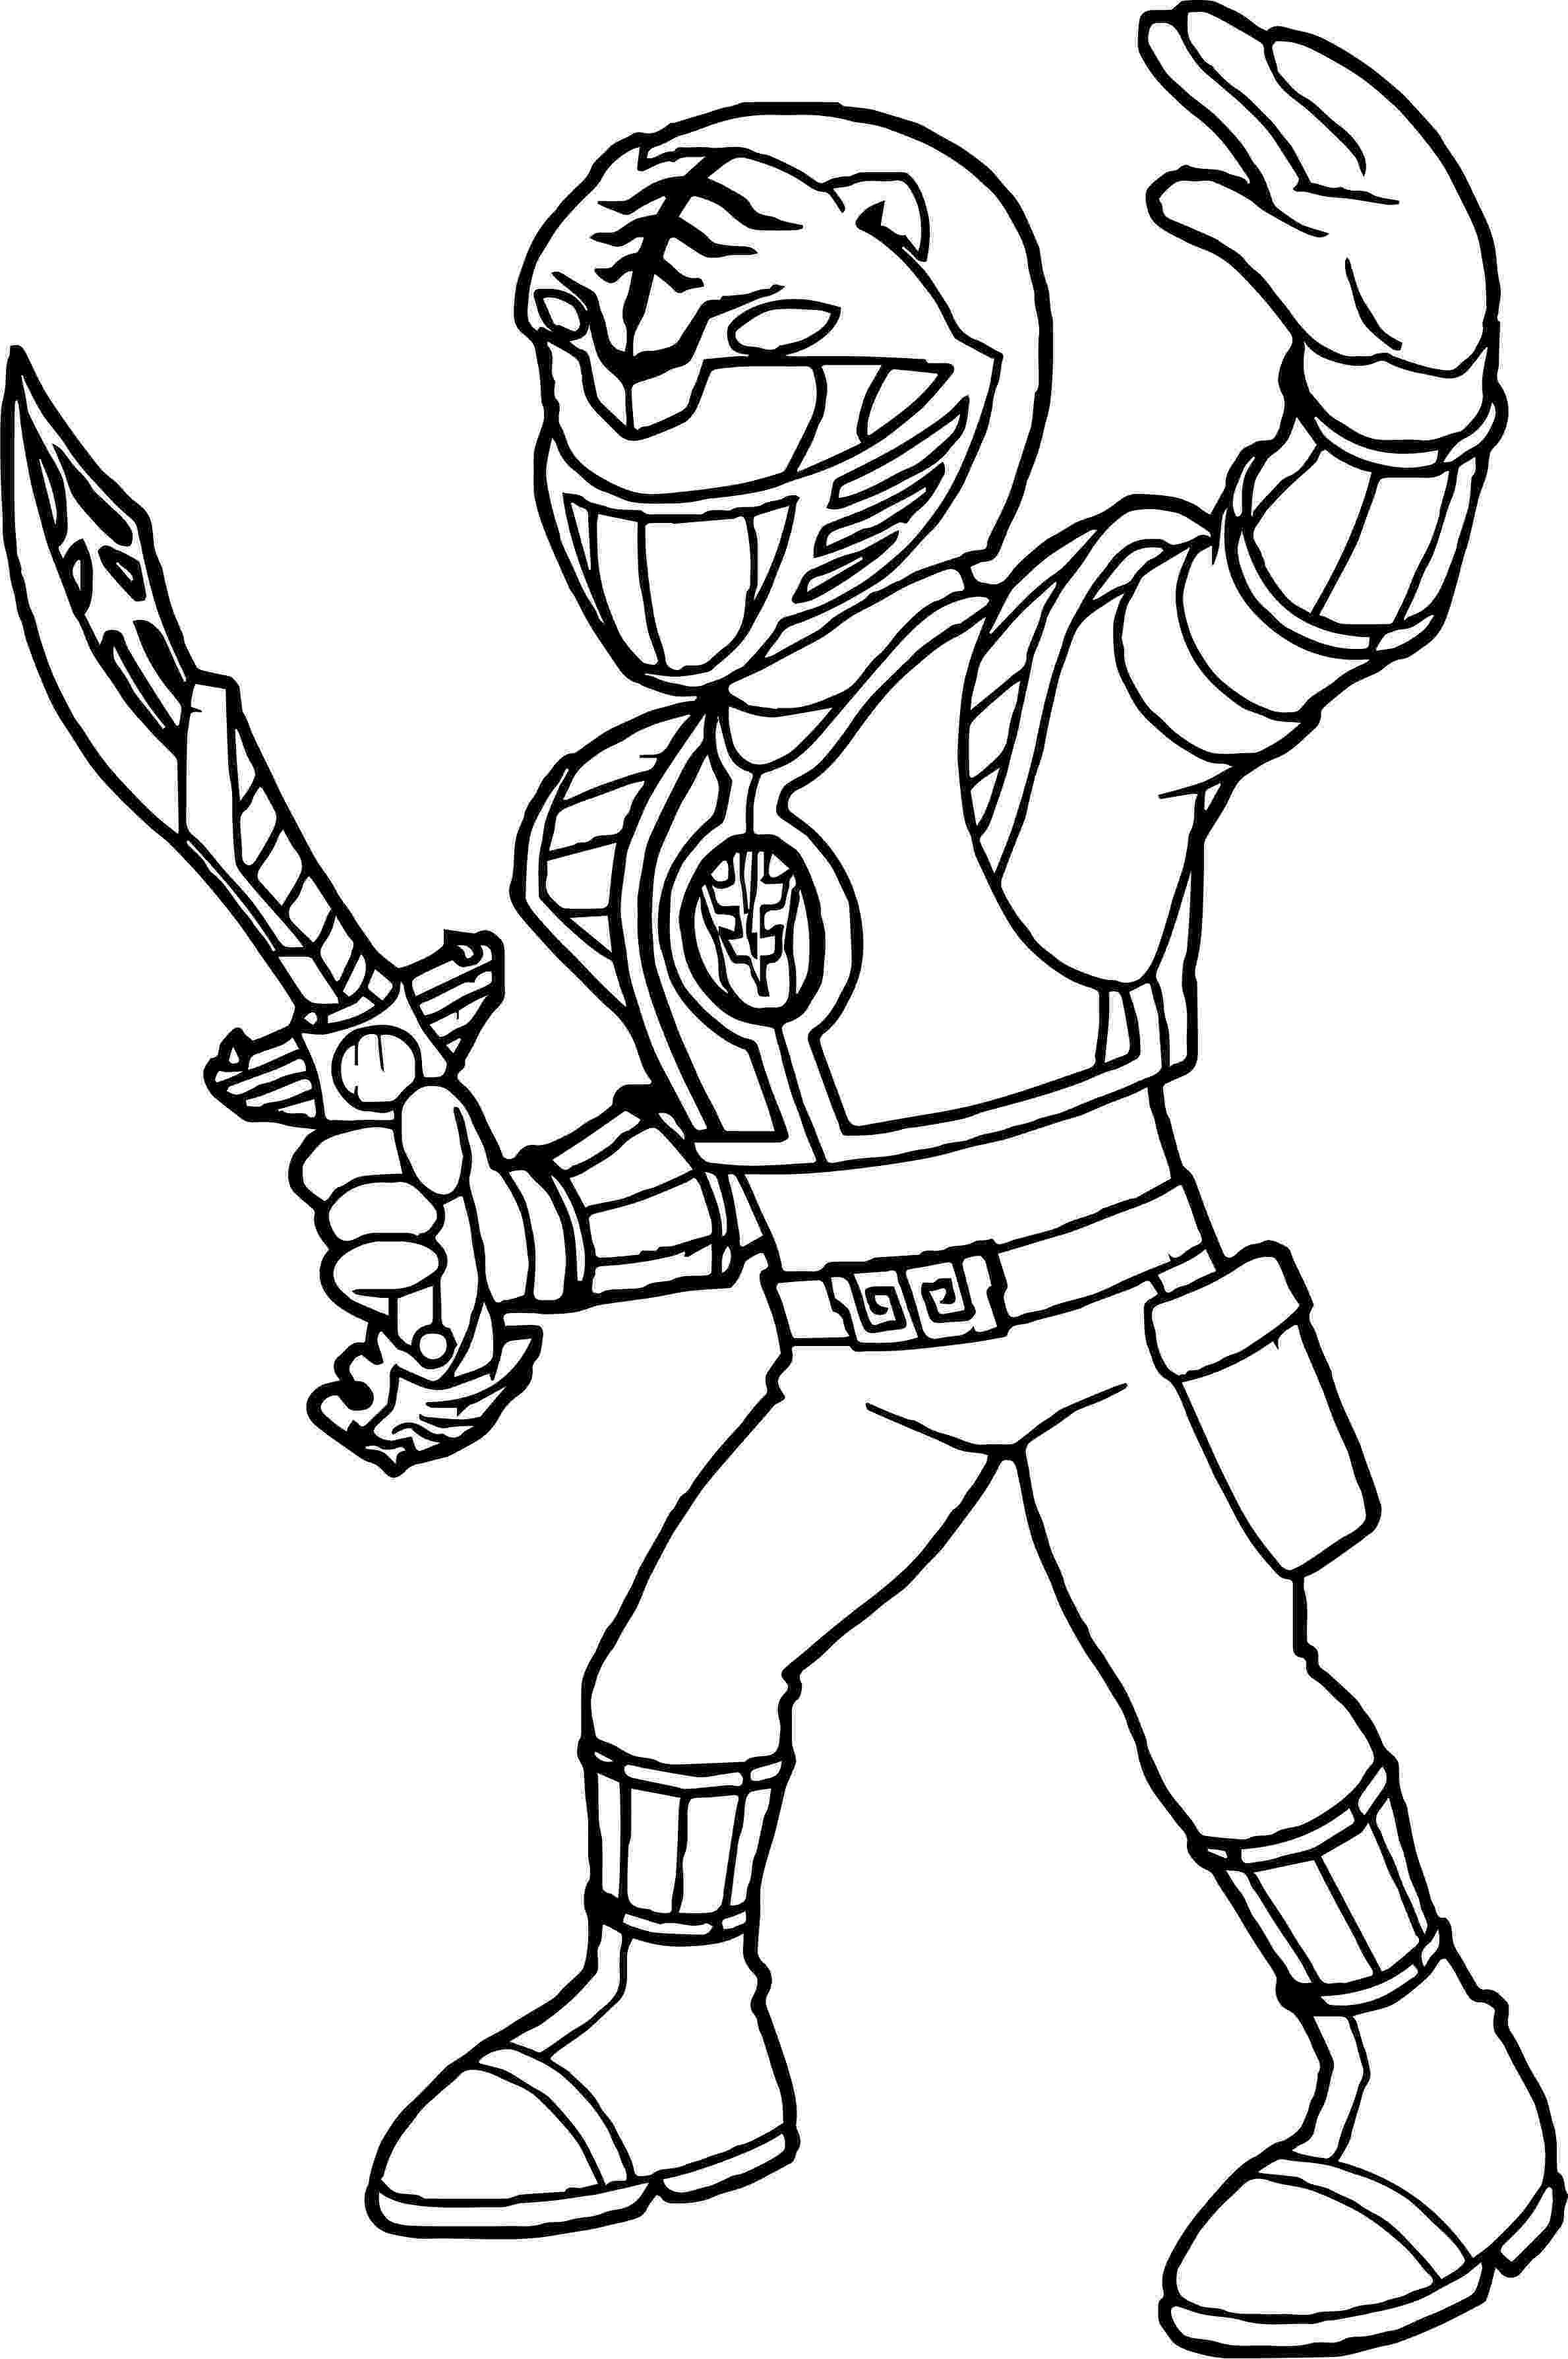 coloring power rangers cool power rangers white ranger coloring page power rangers power coloring